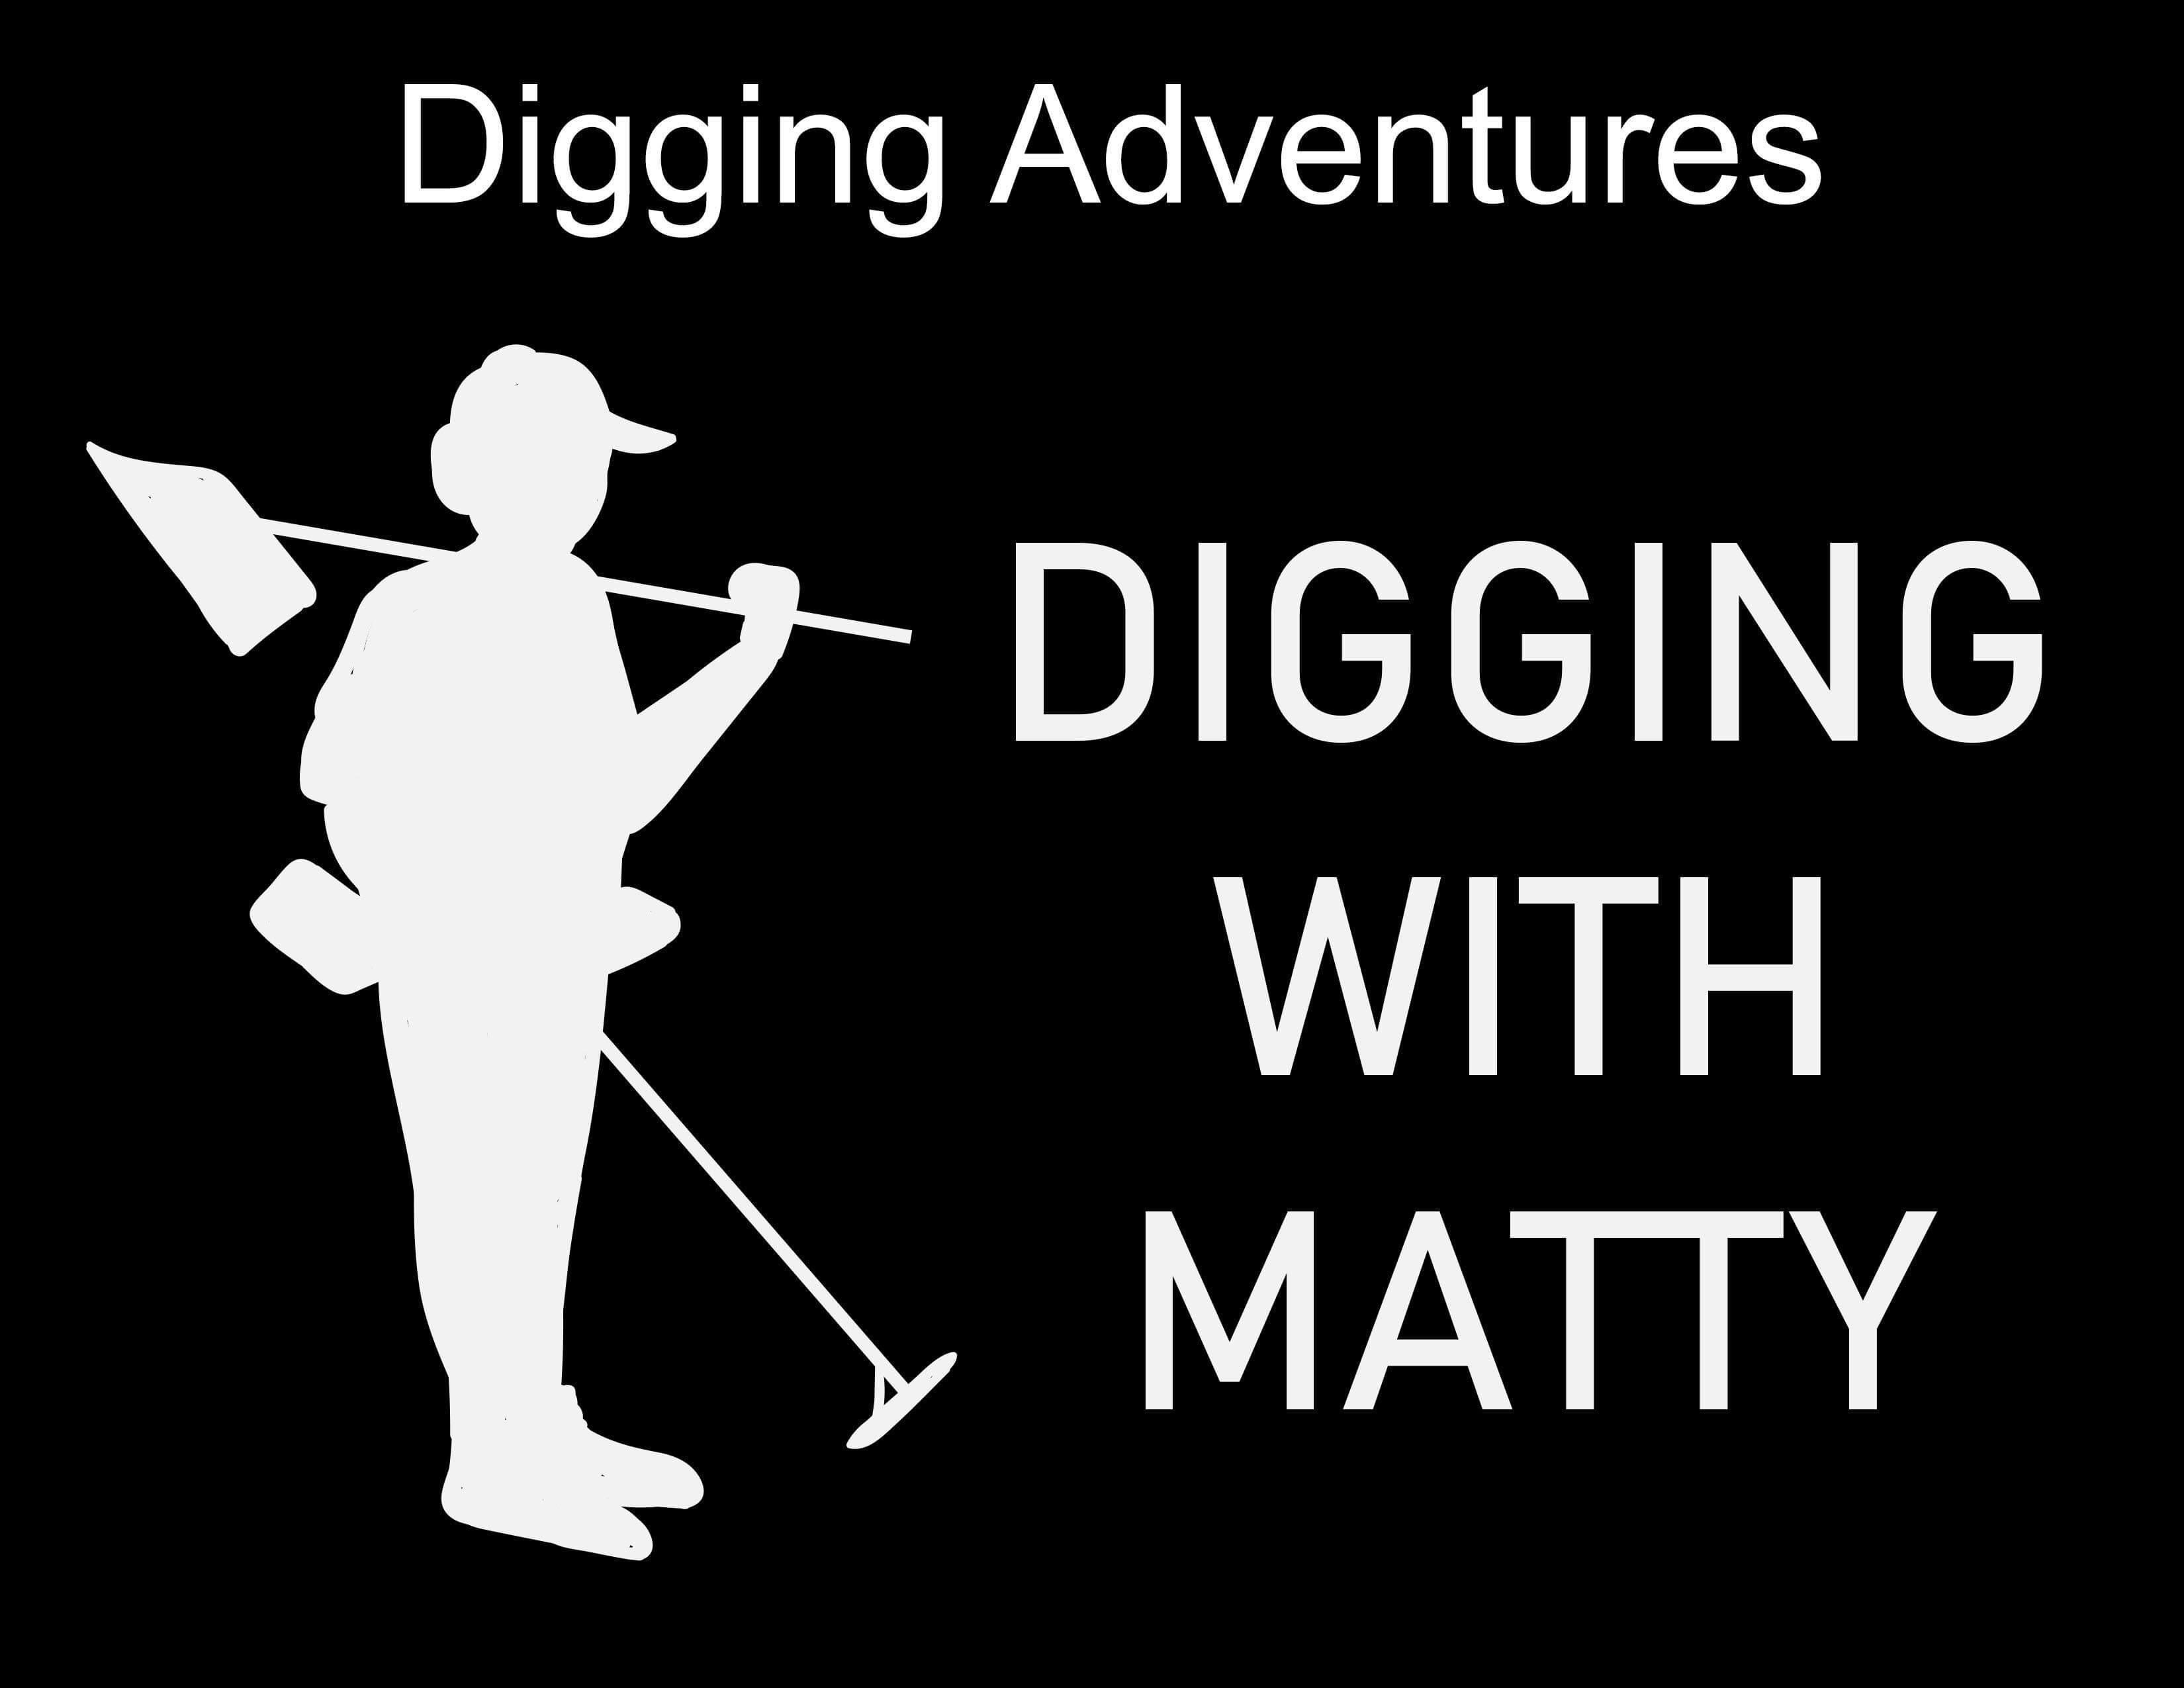 Digging with Matty on YouTube!